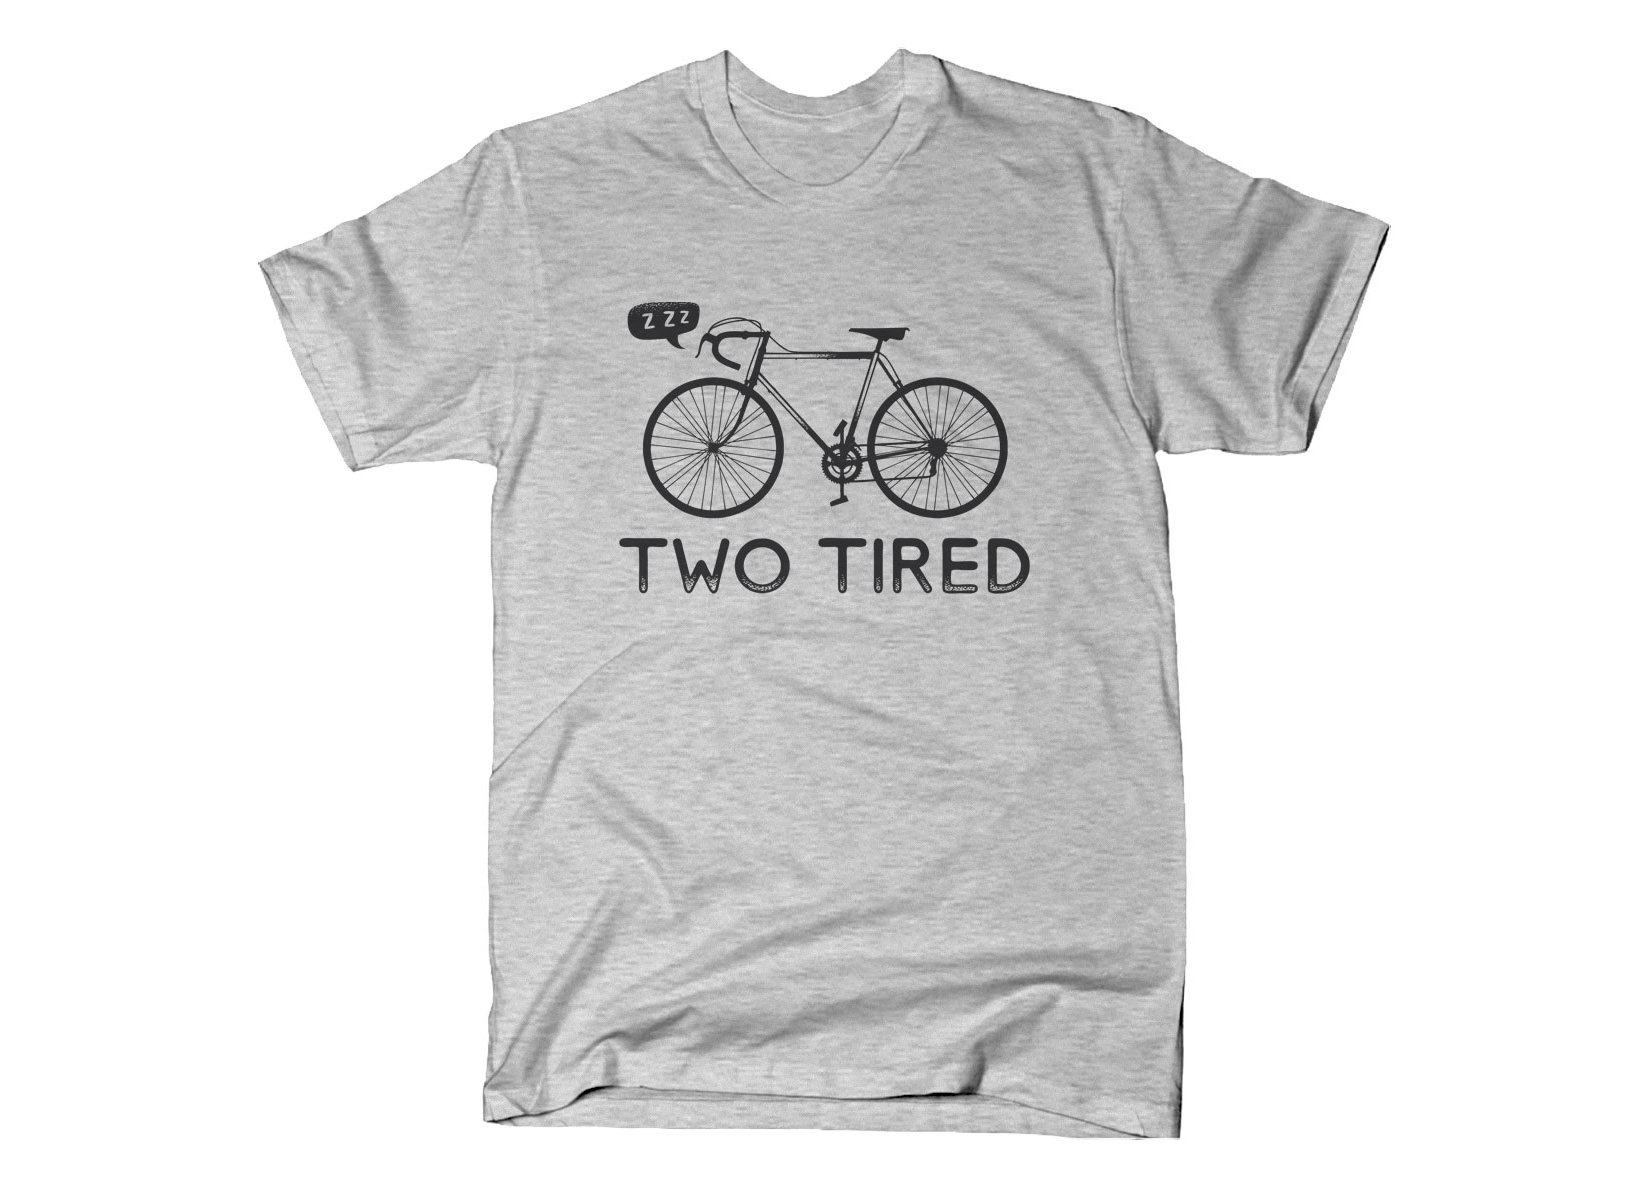 Two Tired on Mens T-Shirt